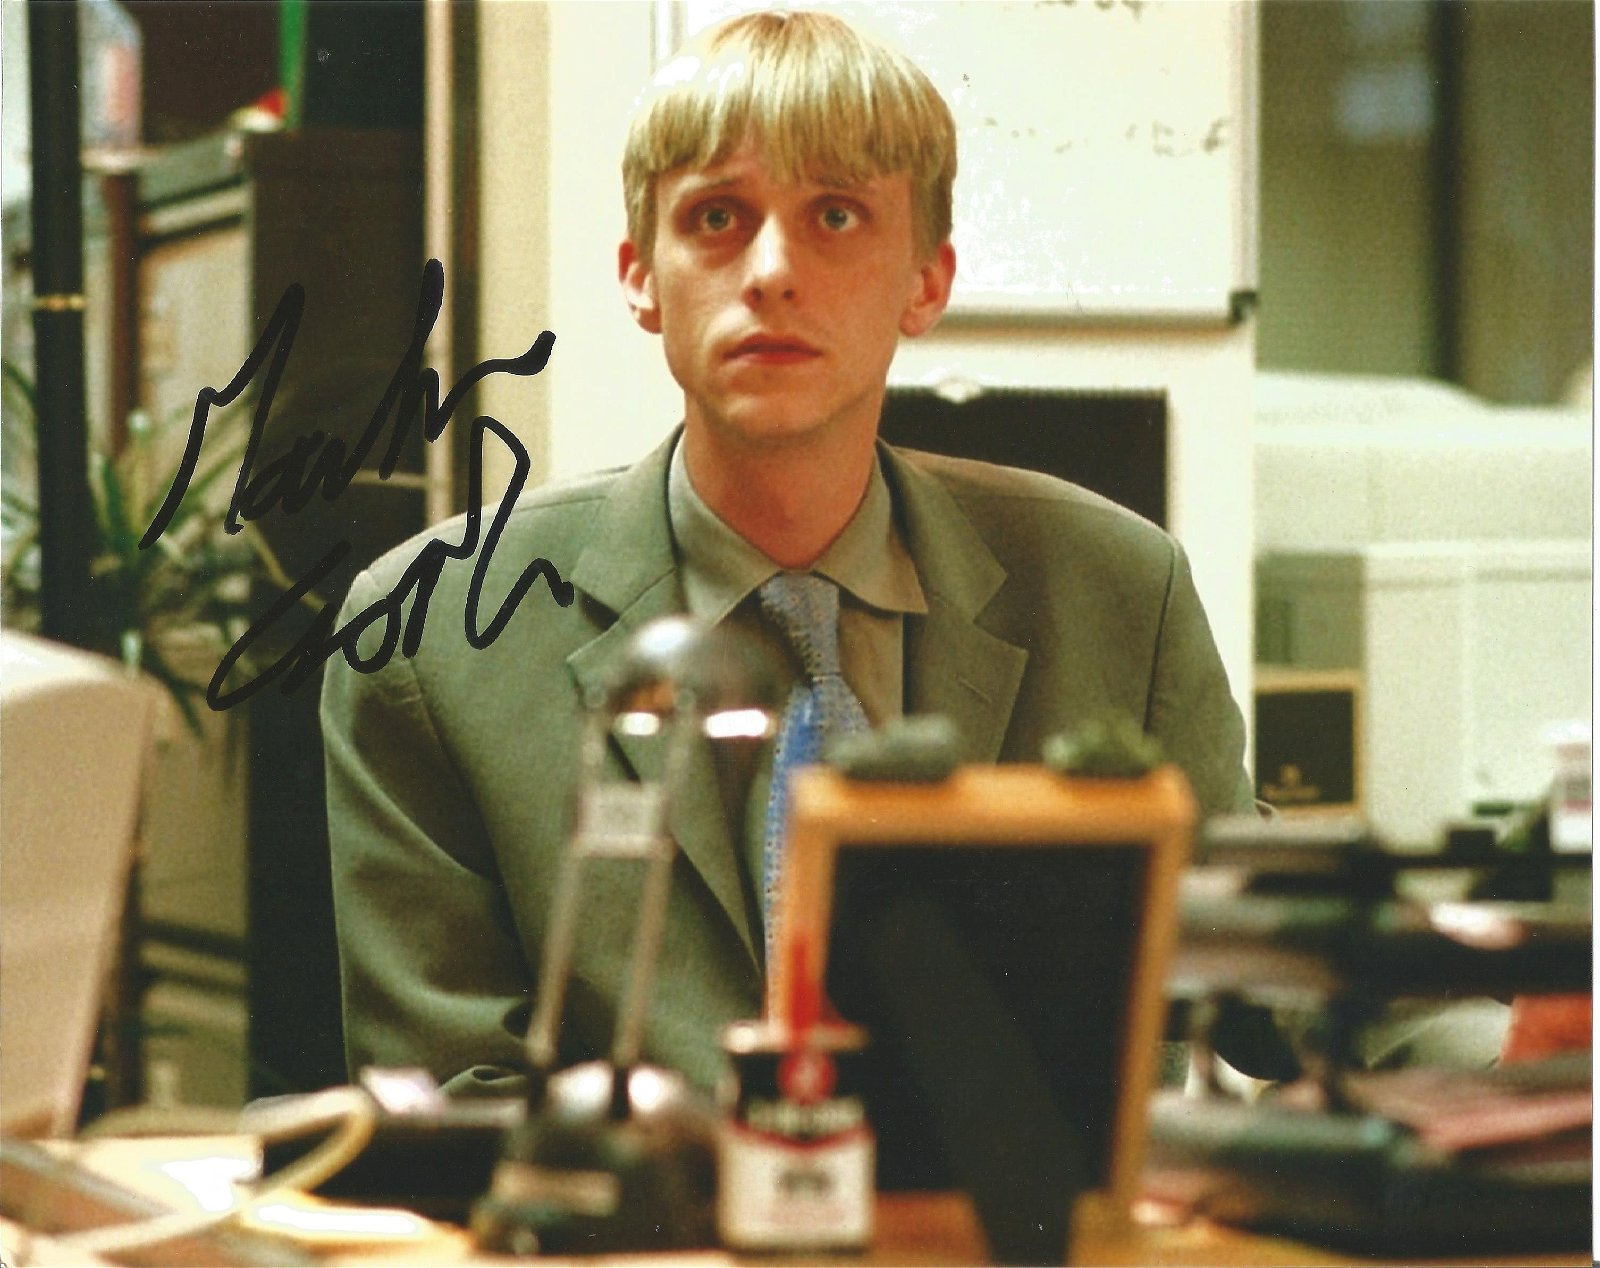 Mackenzie Crook Actor Signed The Office 8x10 Photo .